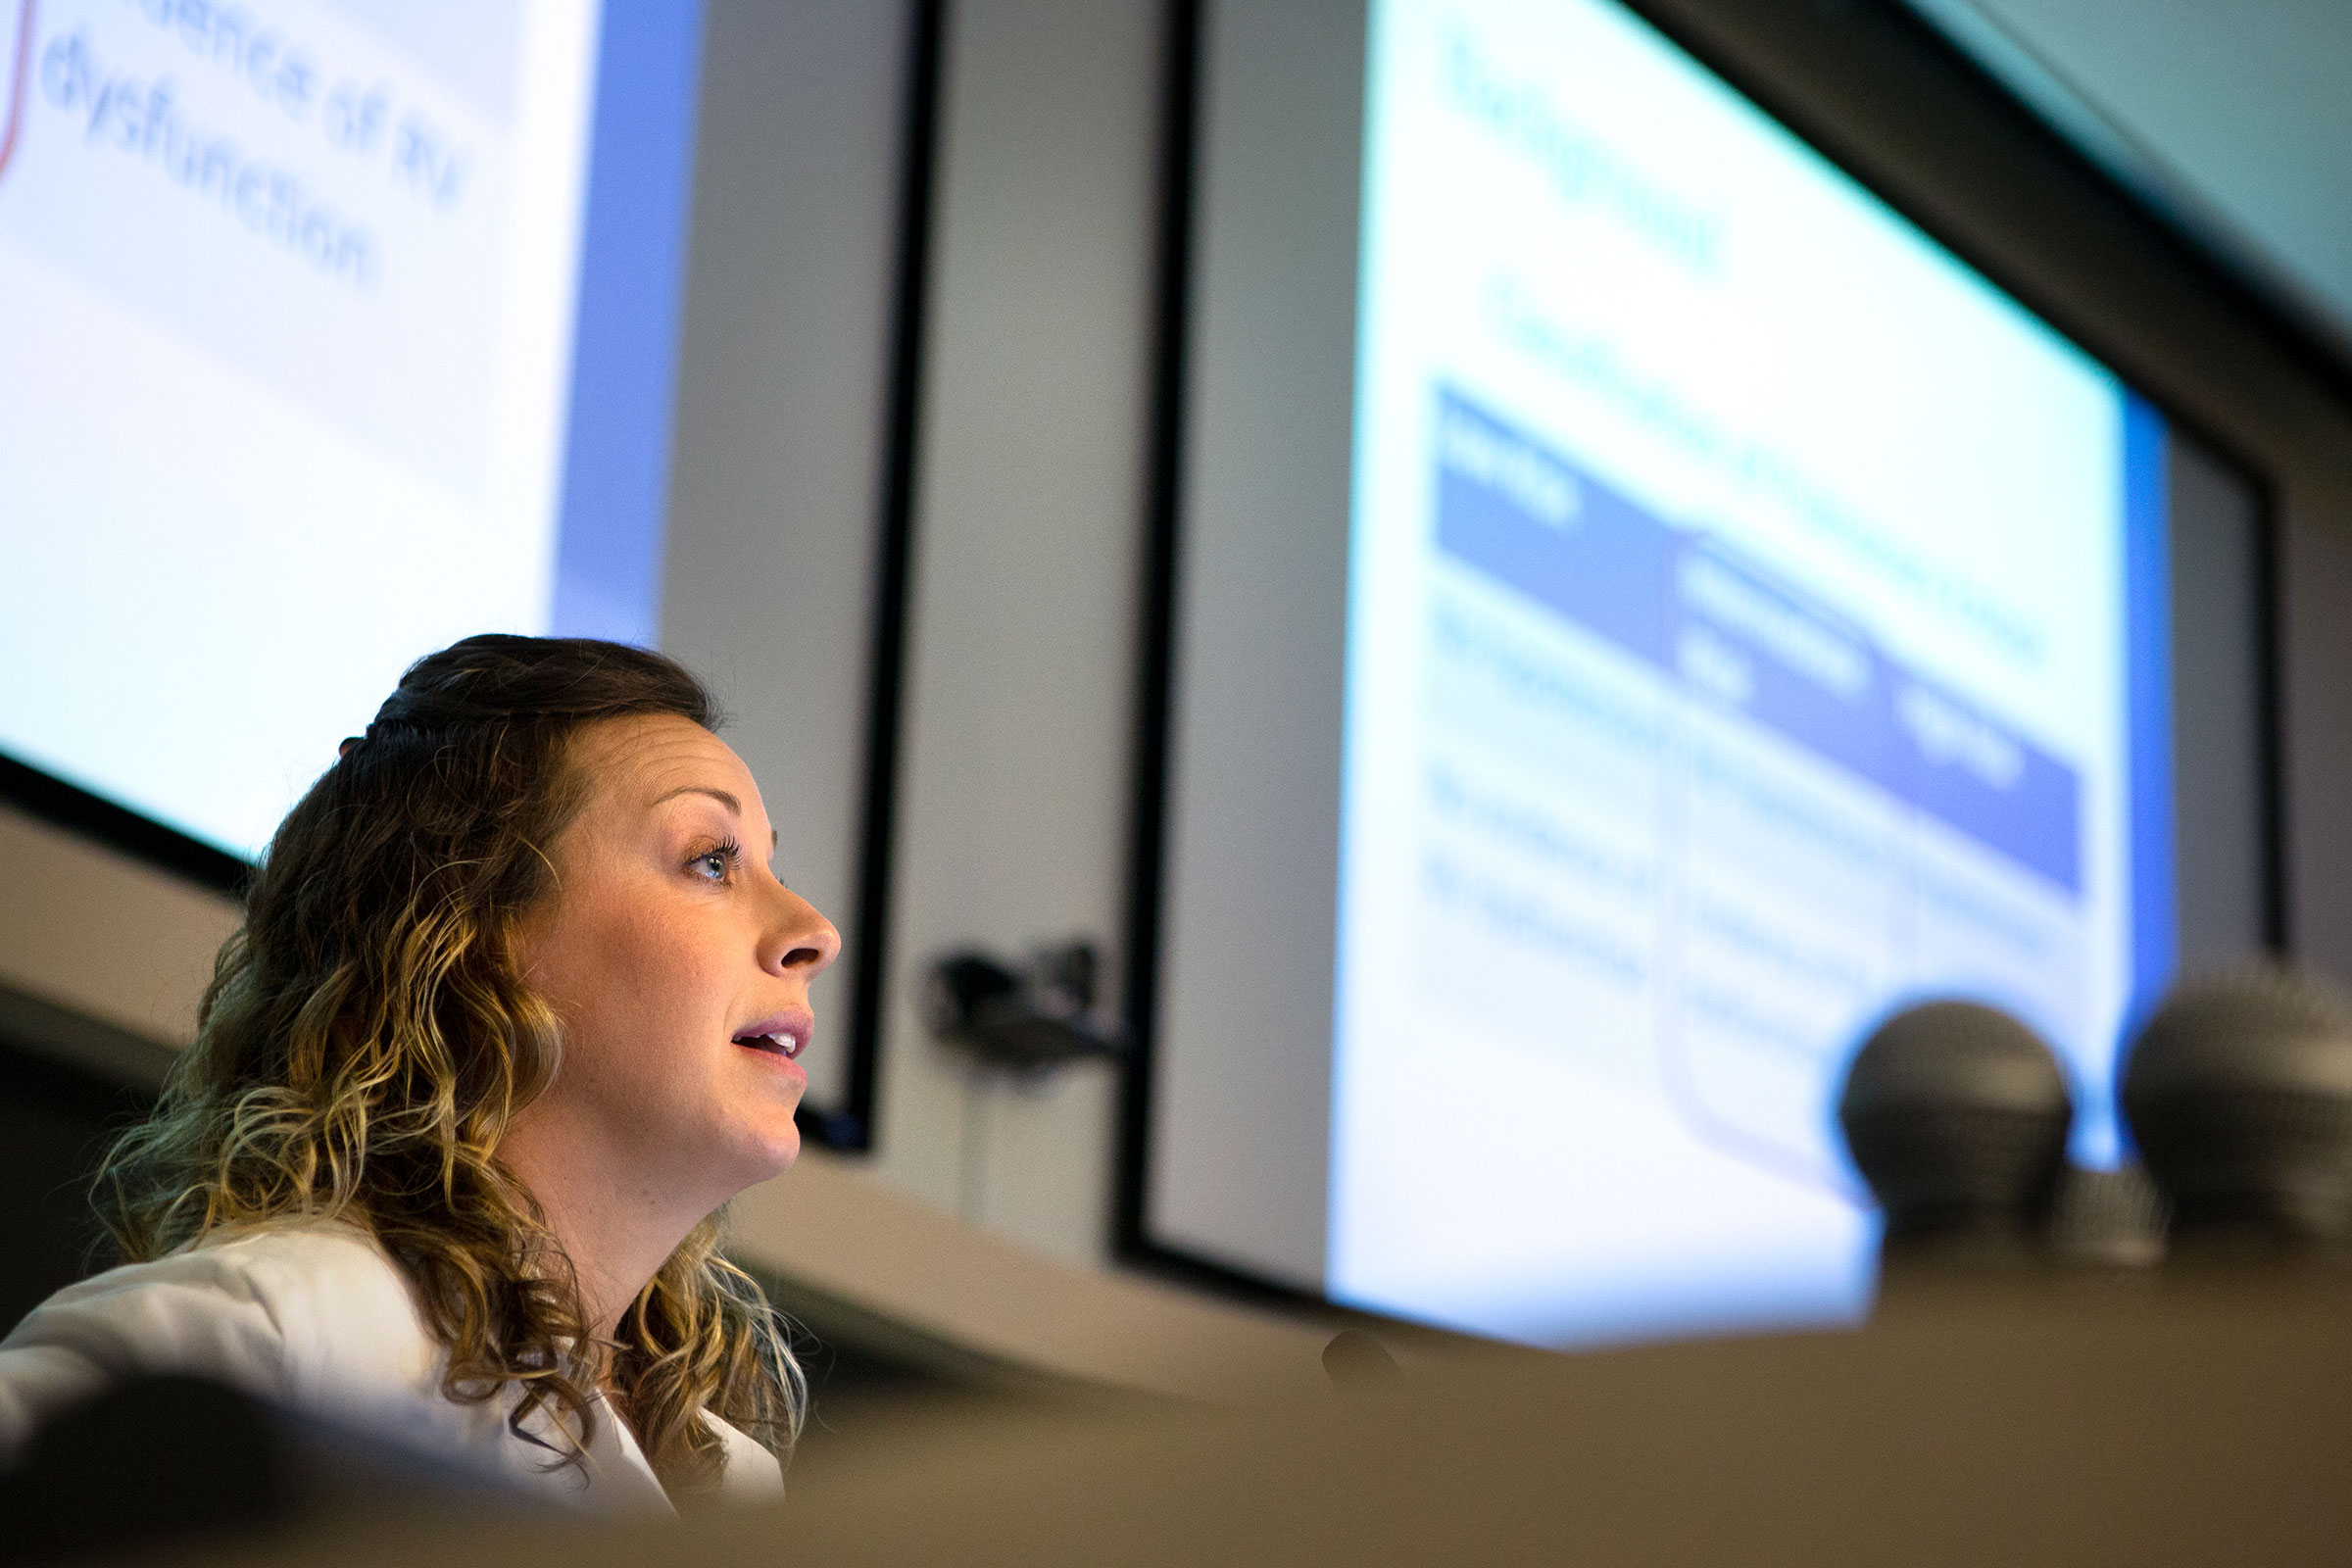 Lisa Domaradzki, a Pulmonary/Critical Care Medicine Fellow, gives an oral presentation at Resident and Fellow Research Day 2019 at Penn State College of Medicine.